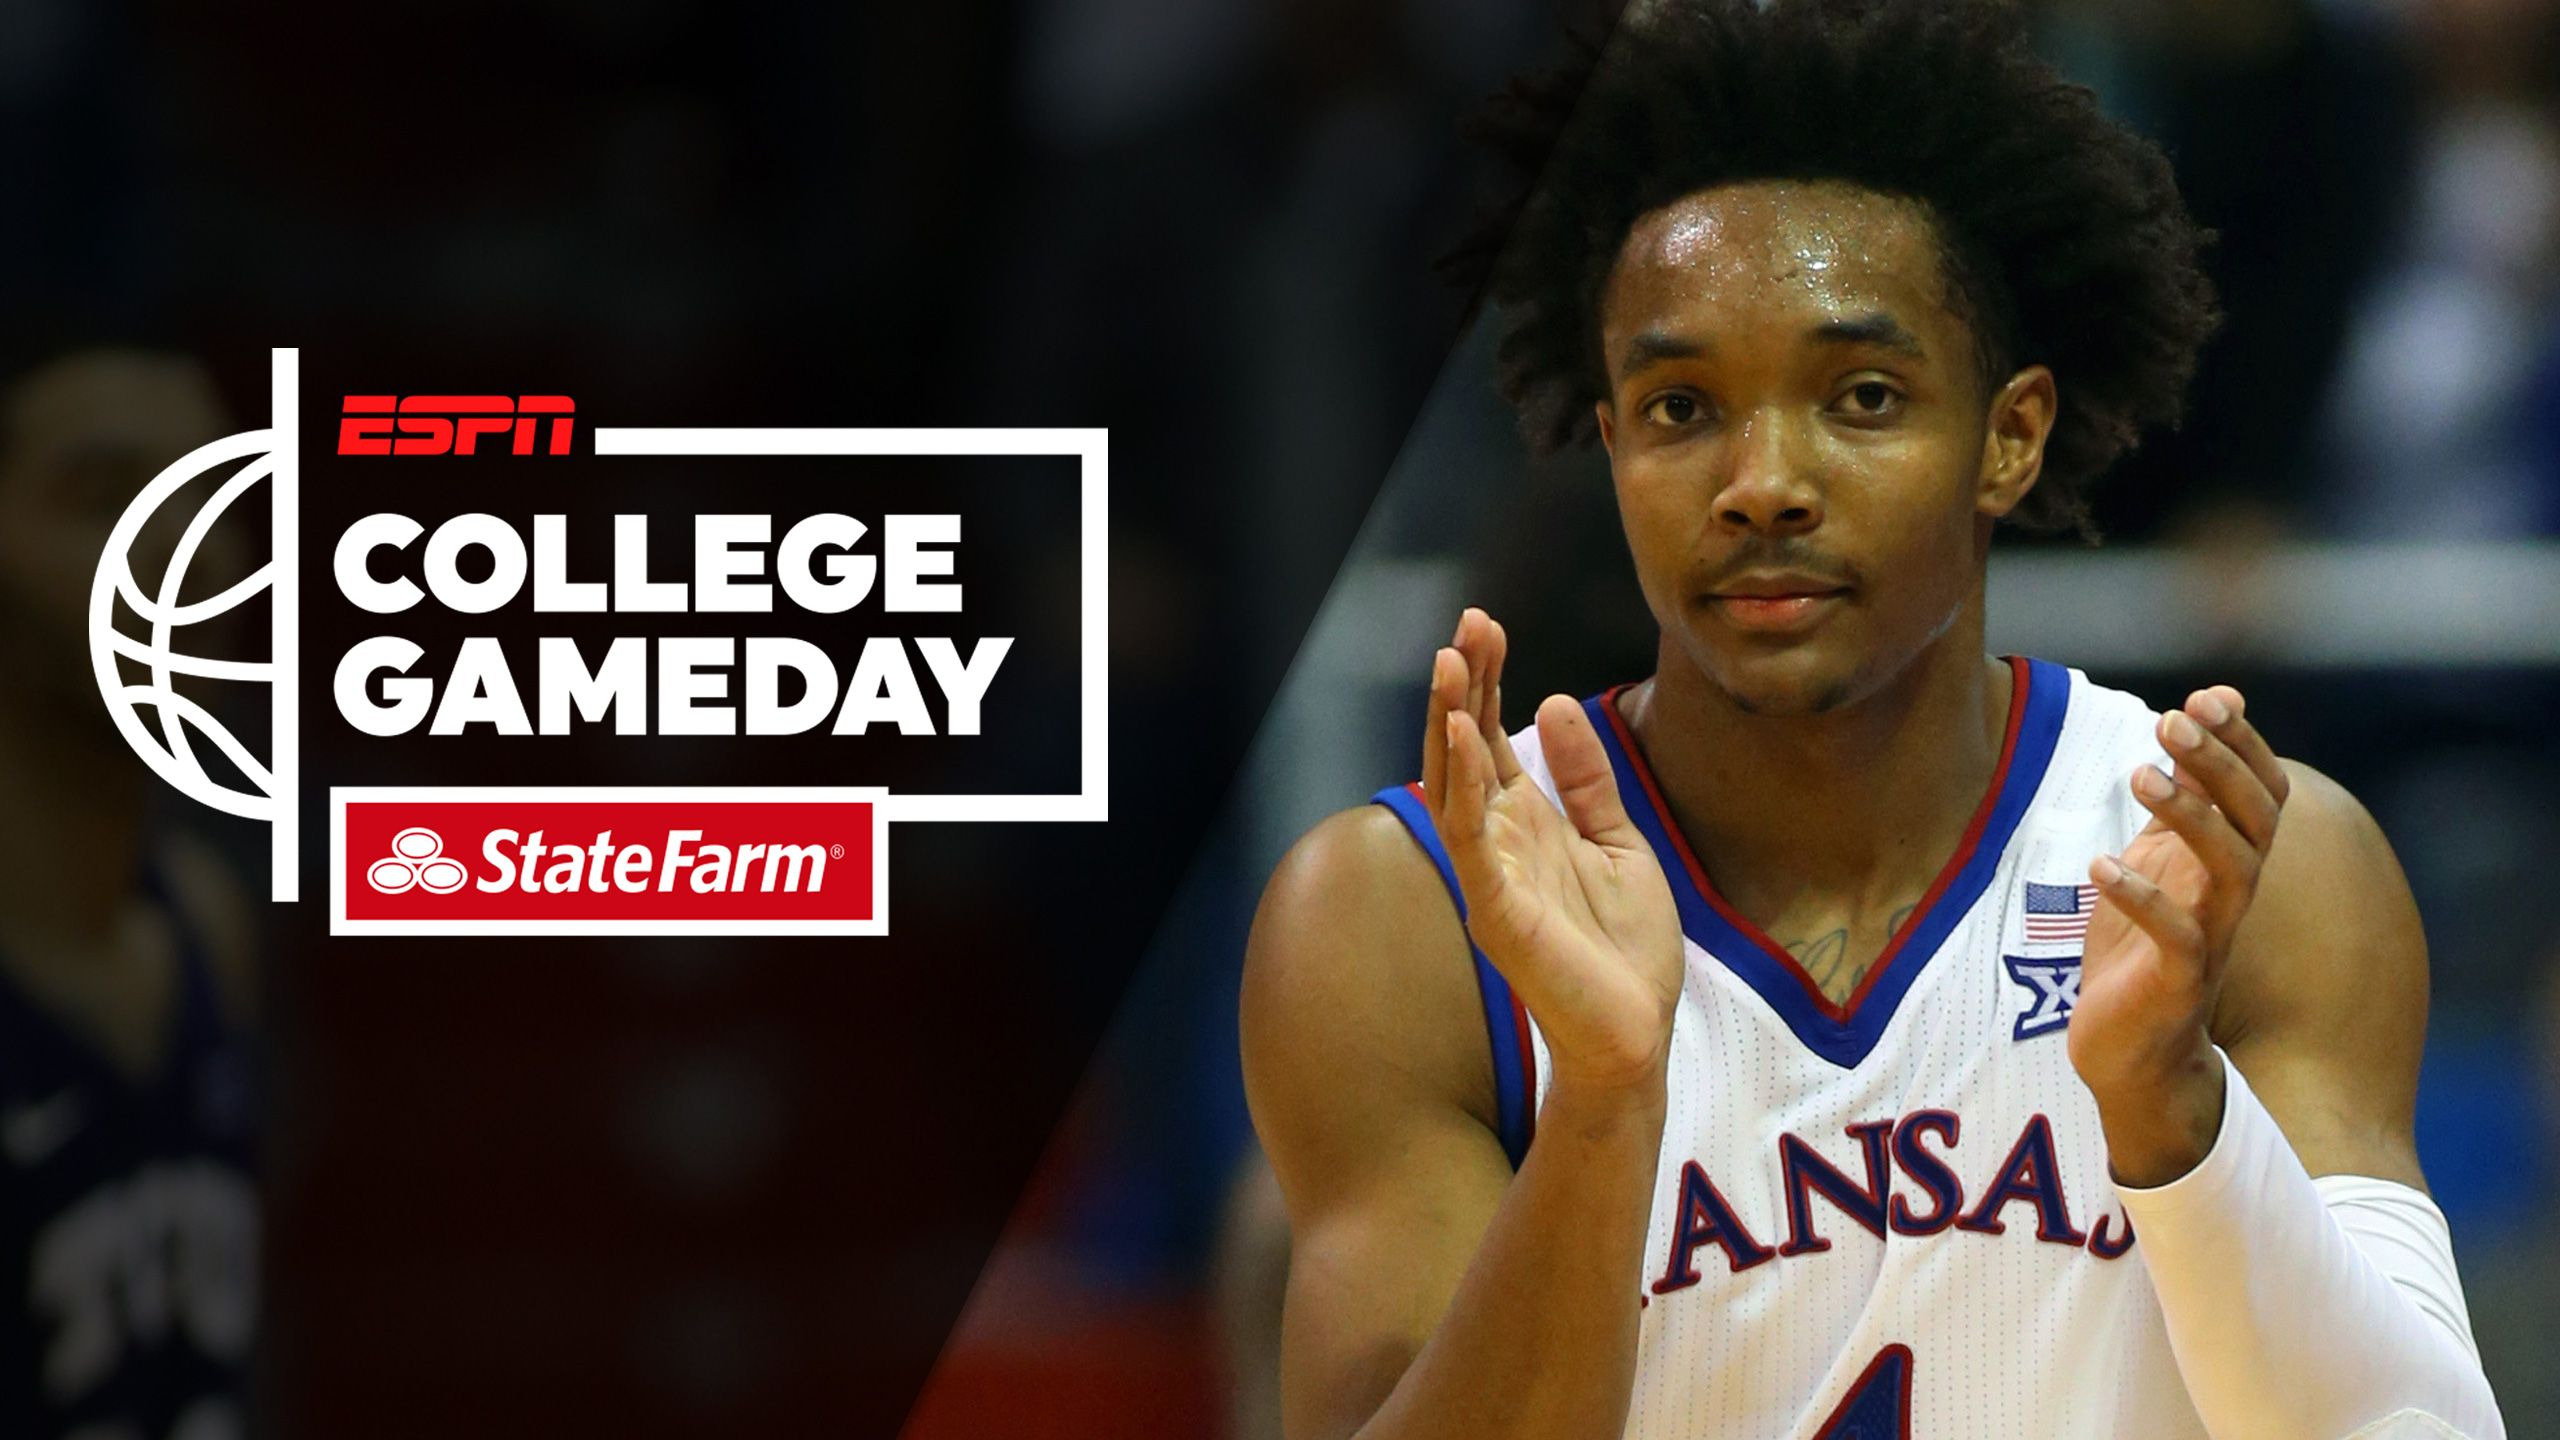 Sat, 2/17 - College GameDay Covered by State Farm